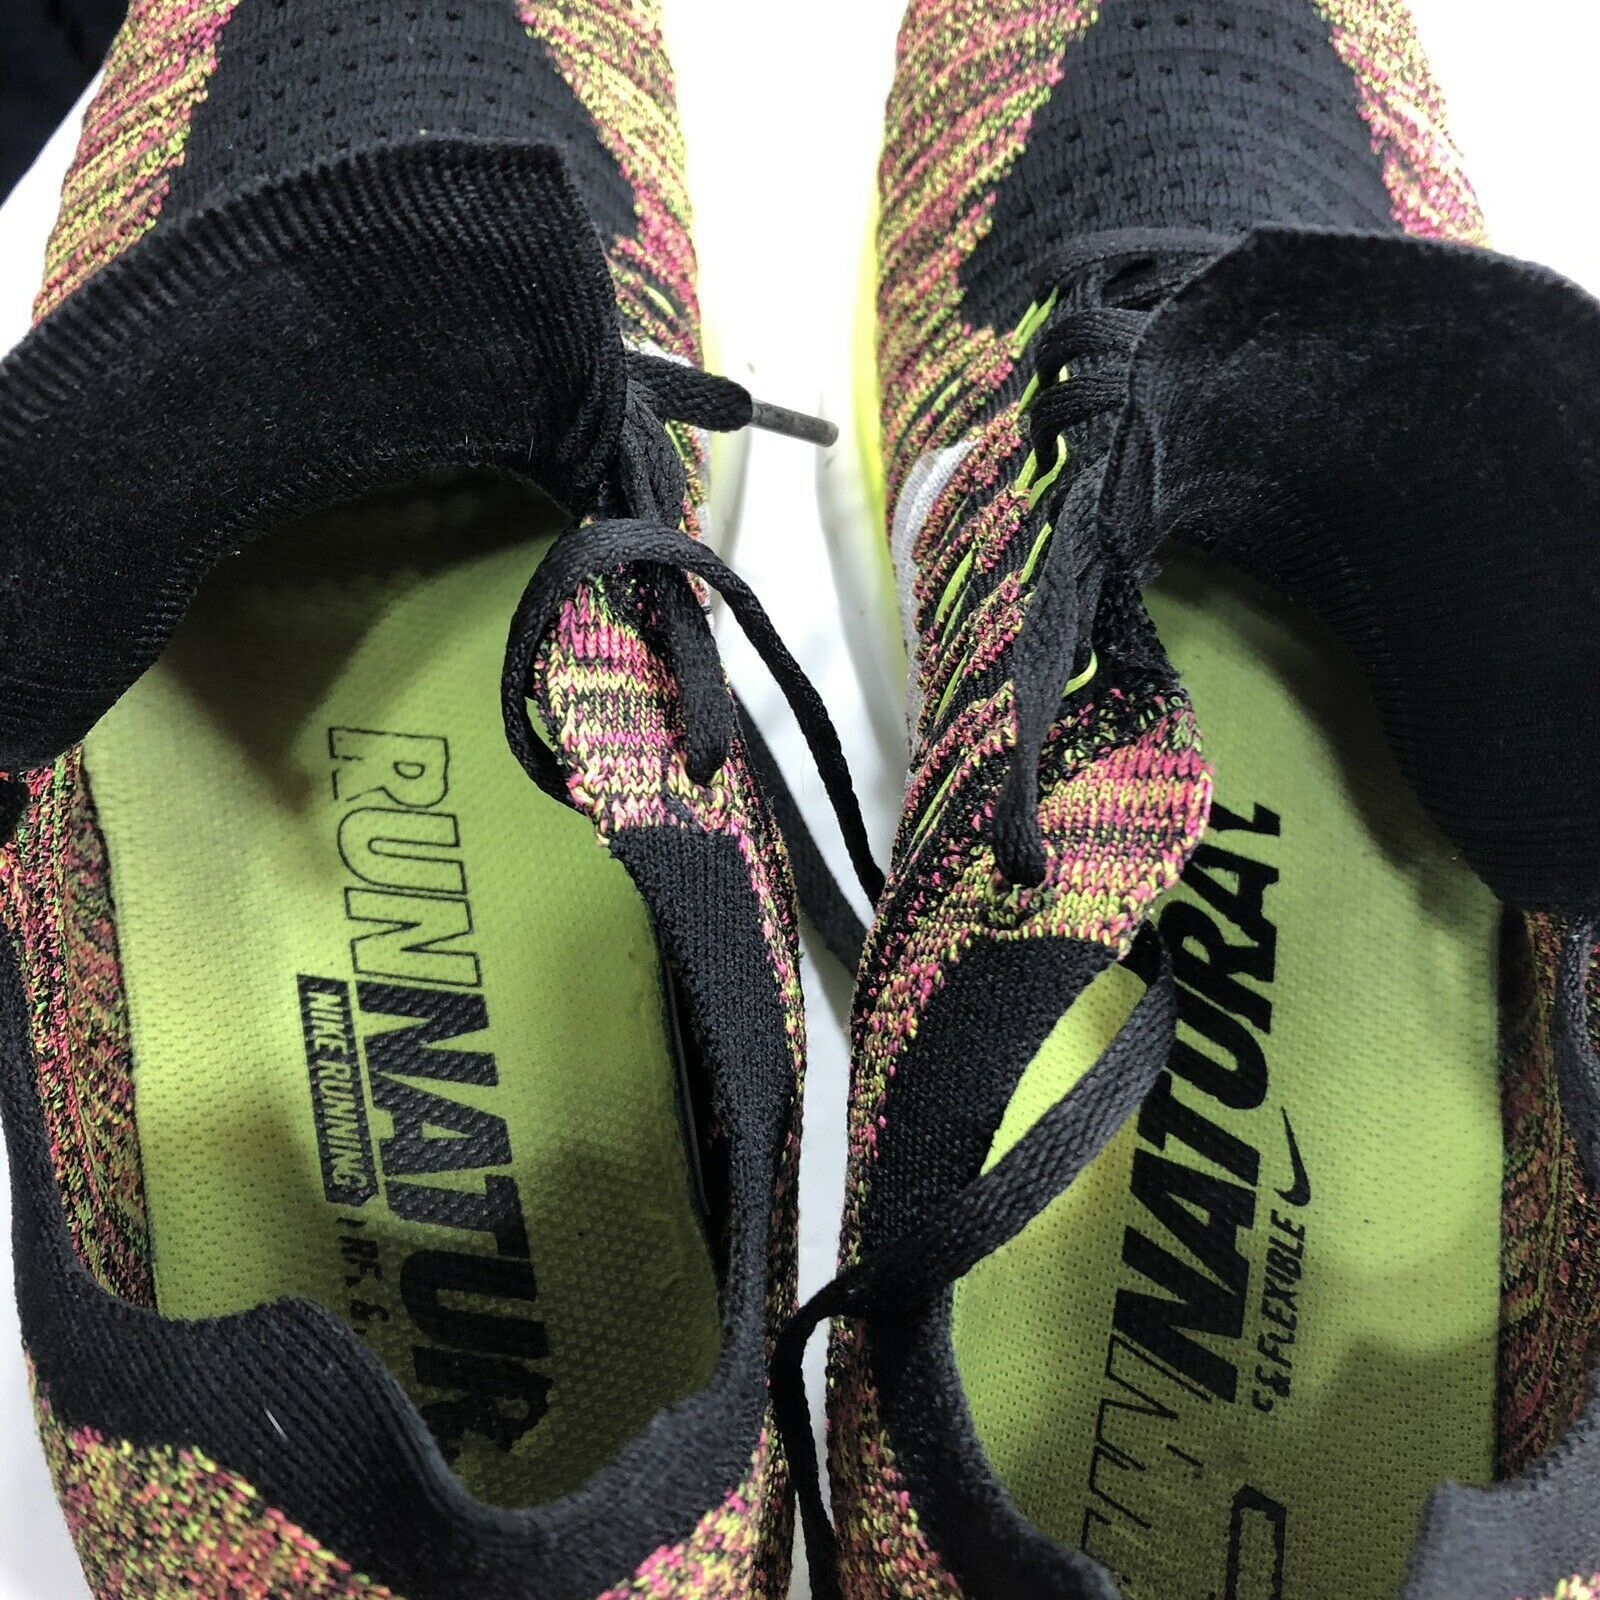 Nike Free RN Flyknit Running Shoes Multicolor Trainer Men's 12 Athletic Air